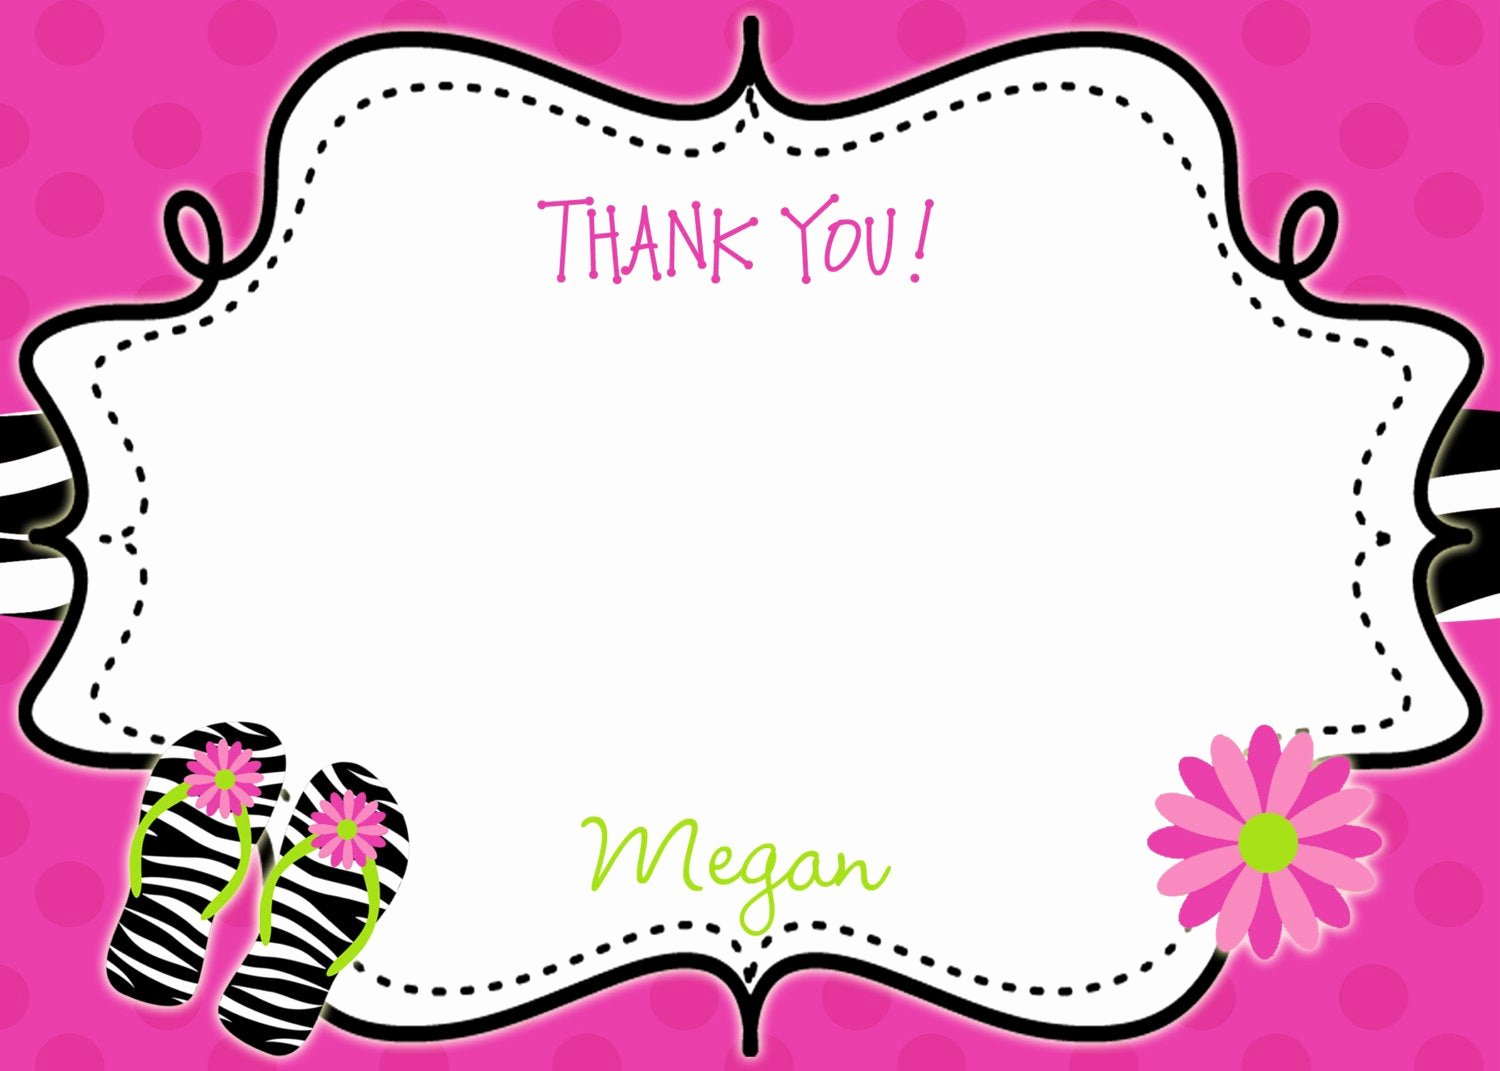 Party Thank You Note Fresh Pool Party Birthday Party Thank You Note Flip Flops